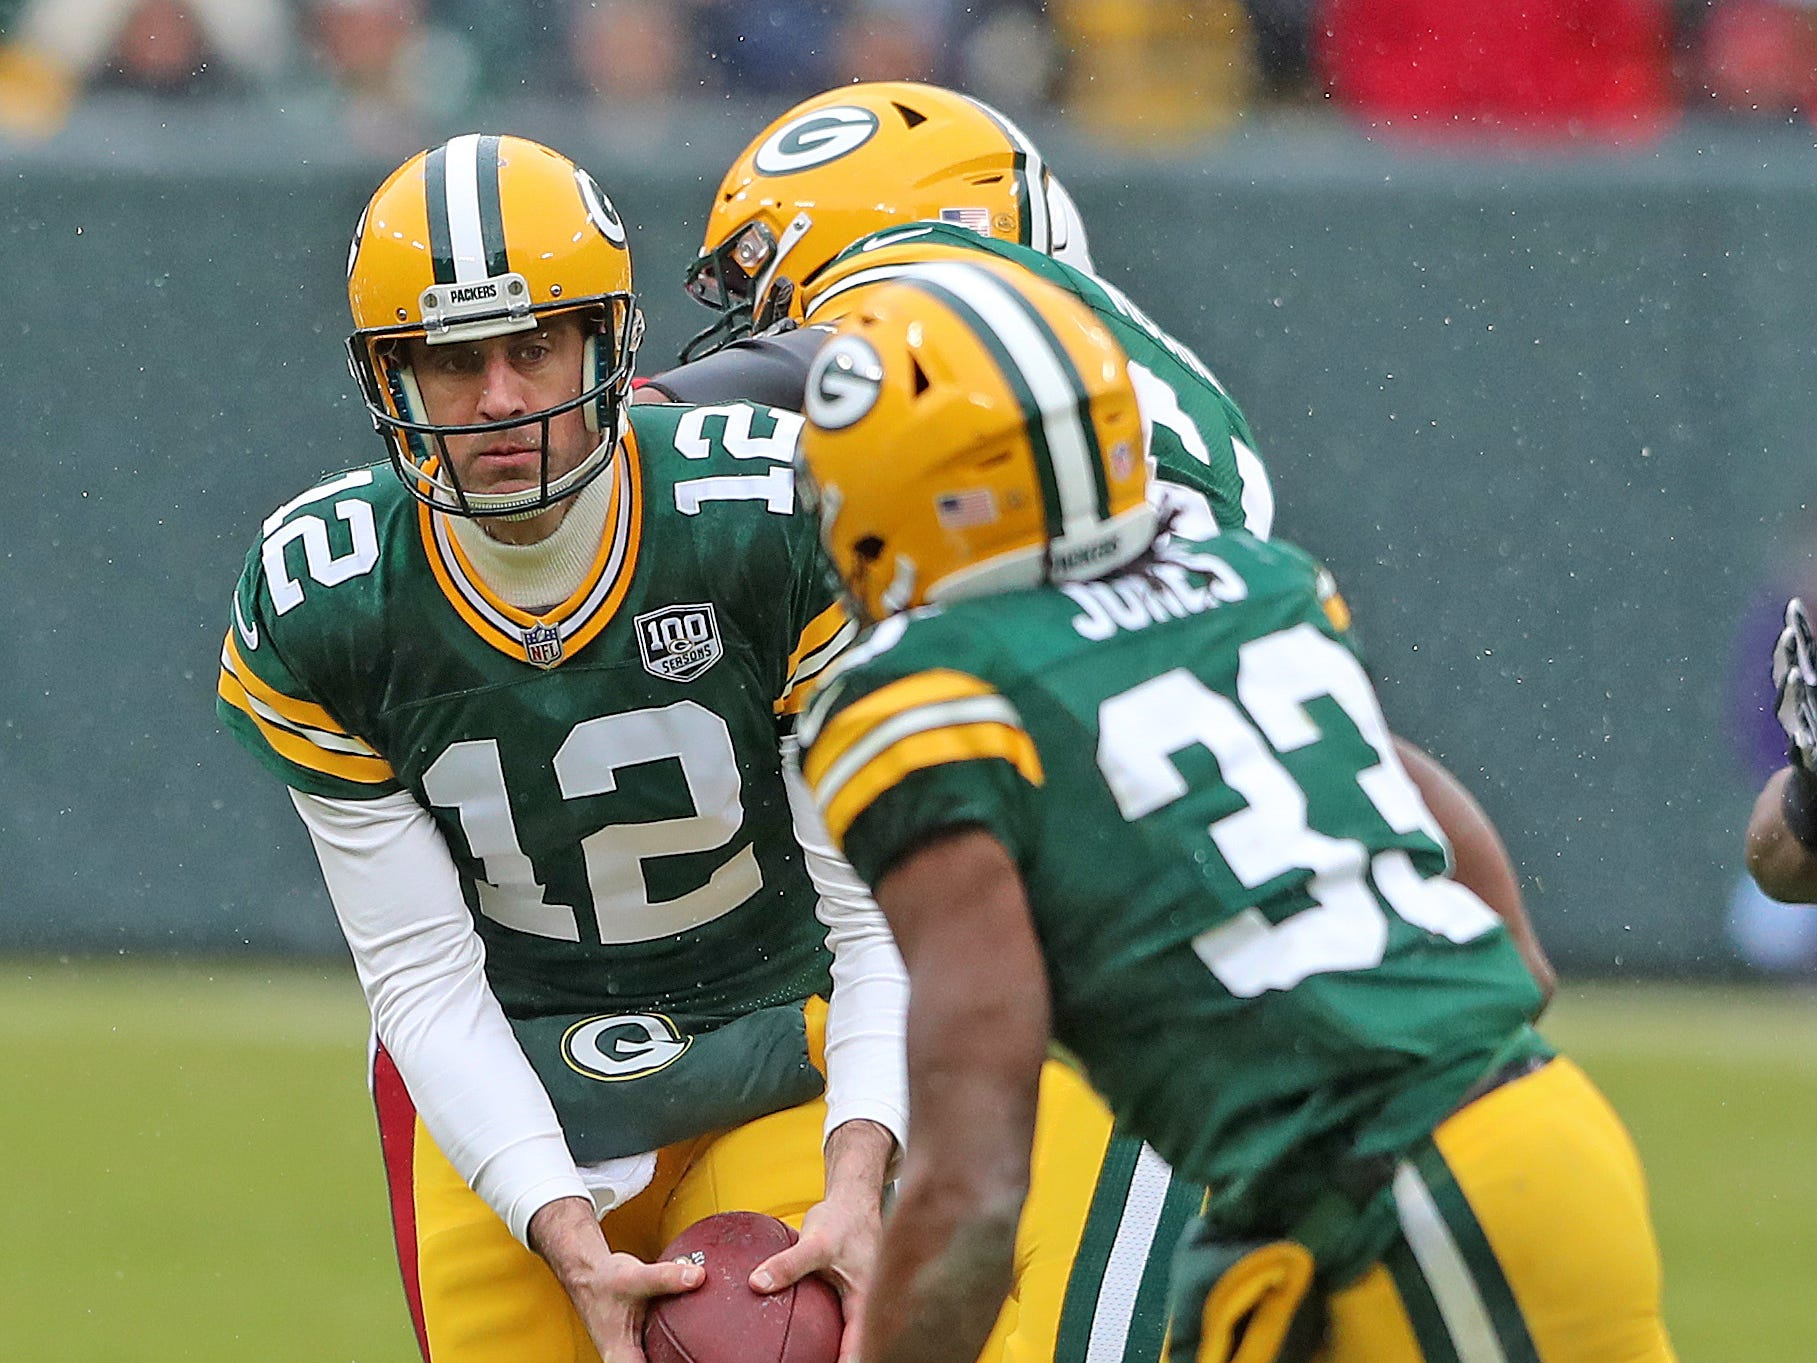 Green Bay Packers quarterback Aaron Rodgers (12) fakes a pitch to running back Aaron Jones (33) against the Arizona Cardinals Sunday, December 2, 2018 at Lambeau Field in Green Bay, Wis. Jim Matthews/USA TODAY NETWORK-Wis